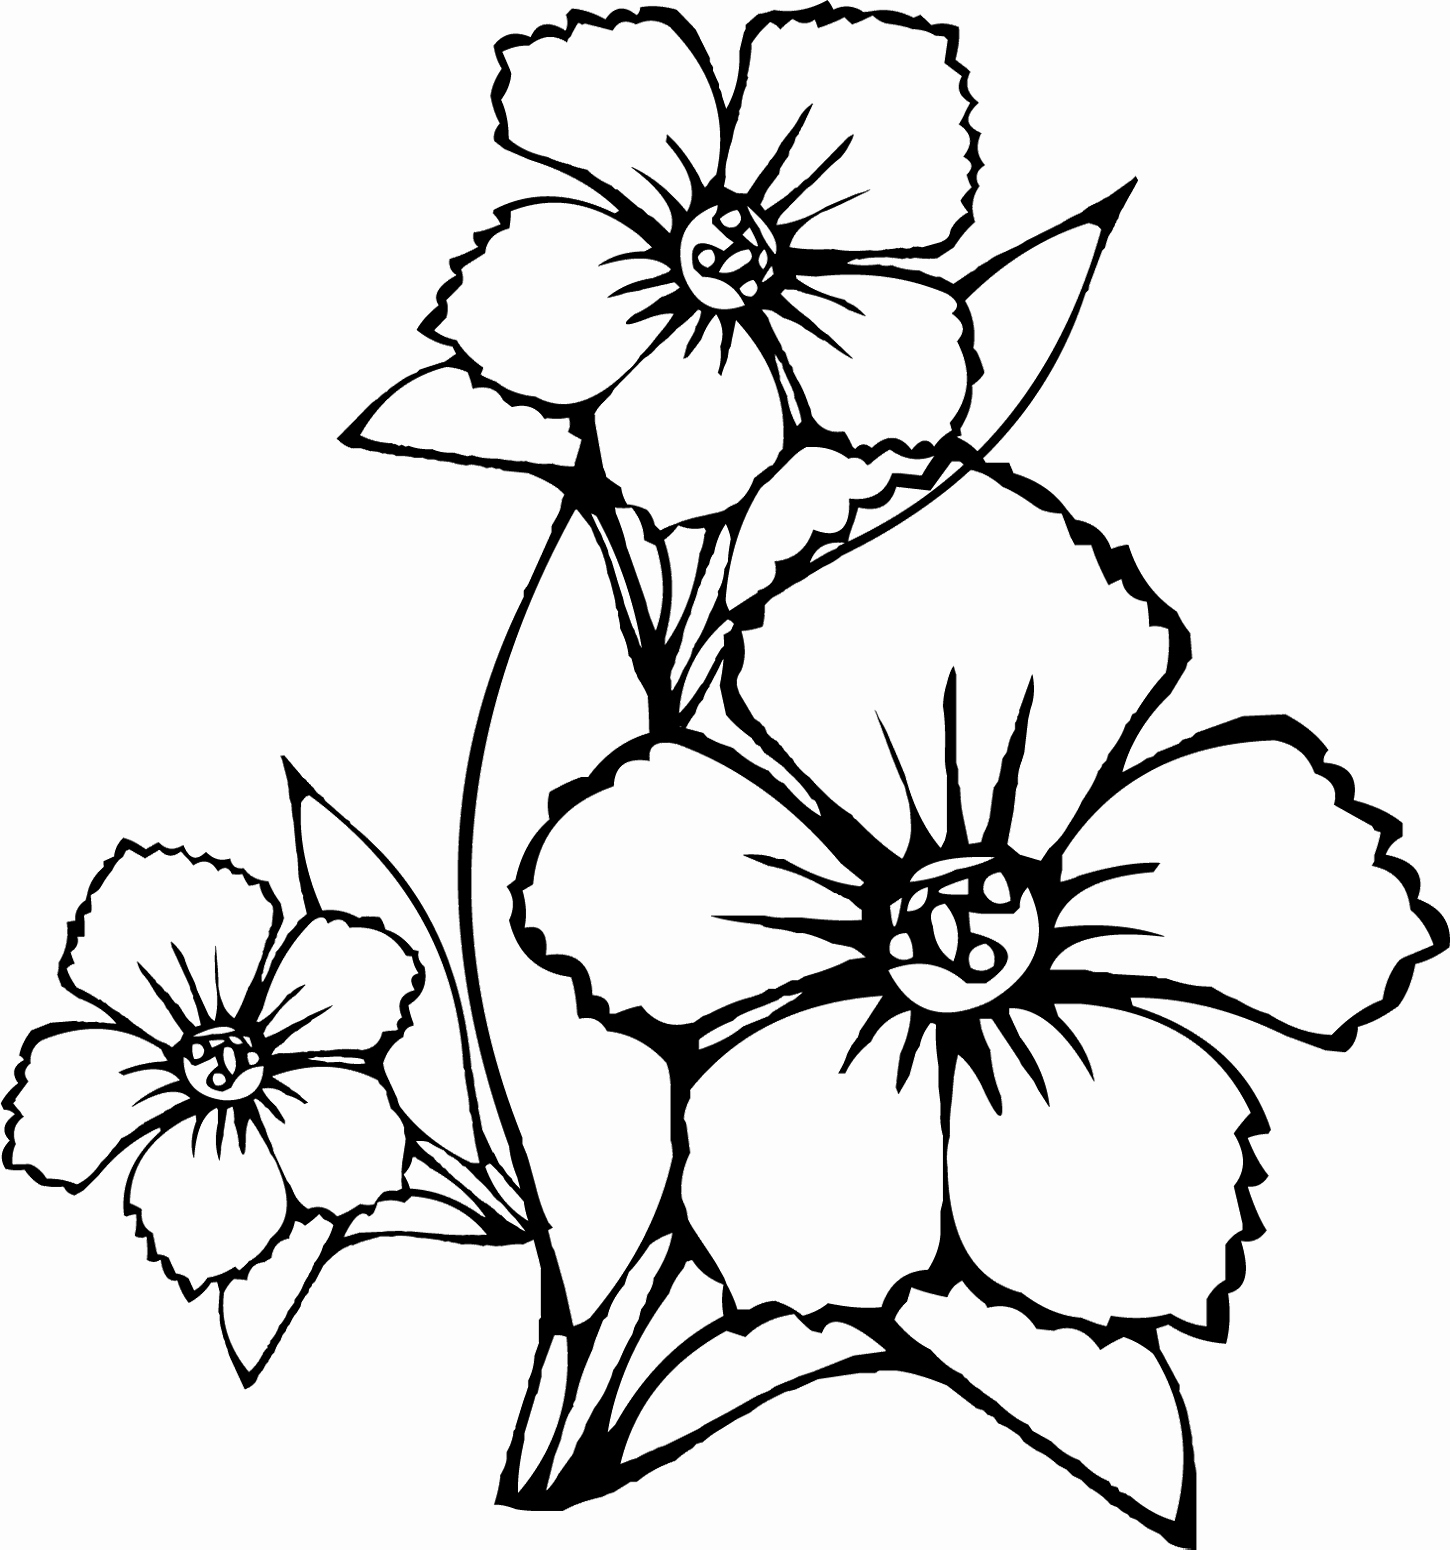 coloring pages hawaiian flowers Collection-Hawaiian Flower Coloring Page California State Flower Coloring Page Coloring Pages Hawaiian 18-a